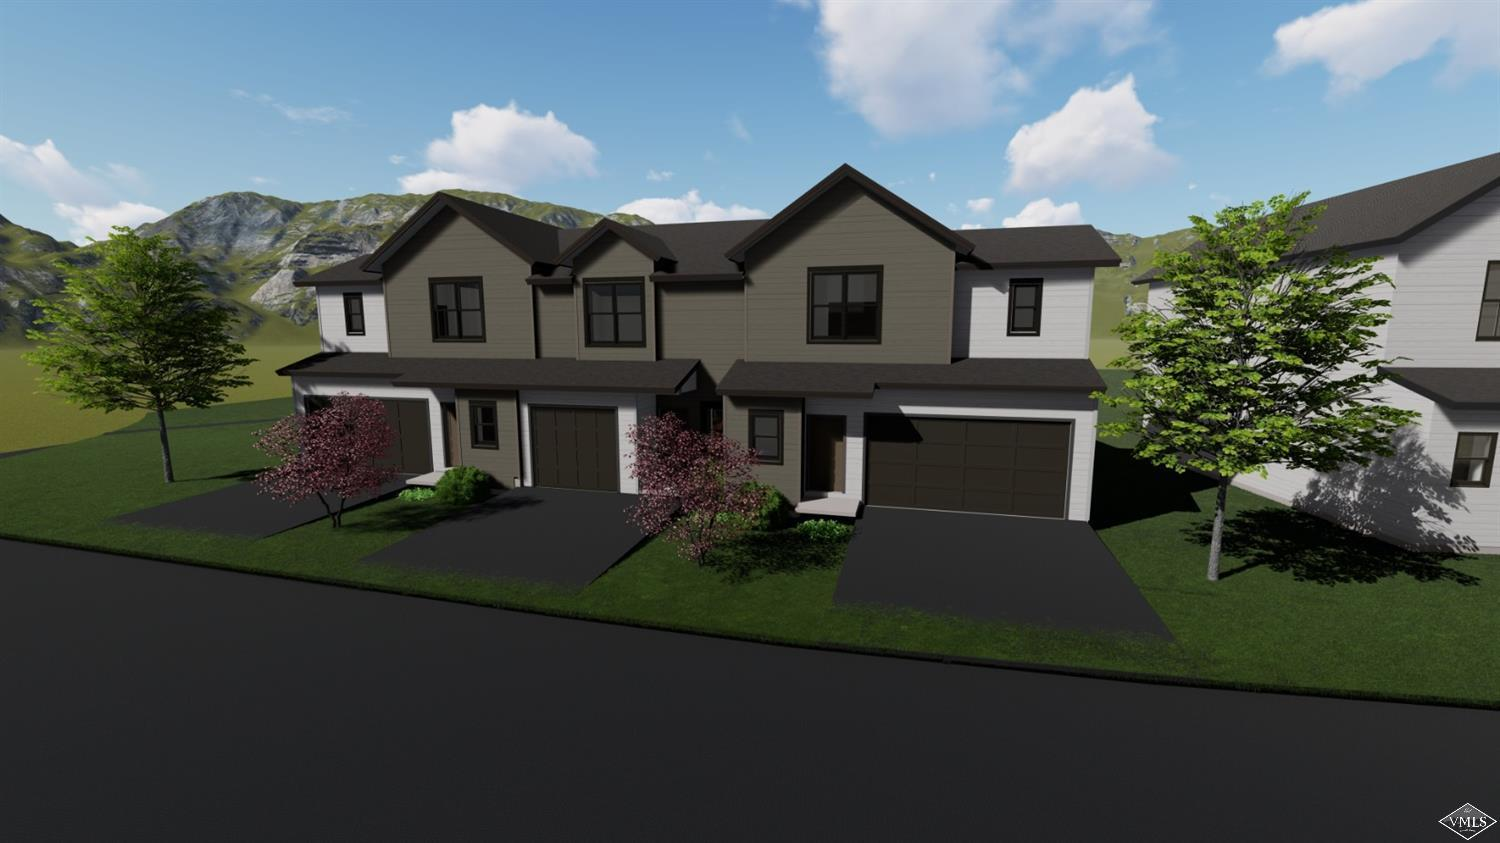 BRAND NEW TOWNHOME! Now under construction.  Well-designed, site-built, 3 bedroom, 2.5 bath home with an attached 2-car garage. Incredibly convenient location close to Costco, Gypsum Rec Ctr, Bus Route and Eagle County Airport. Only minutes to world-class recreation of all types. Standard finishes include vaulted ceilings, LVT flooring, laminate countertops, kitchen pantry, & Whirlpool appliances. Upgrades are available as well! Laundry room conveniently located on the bedroom level. This is an end unit & offers plenty of light.